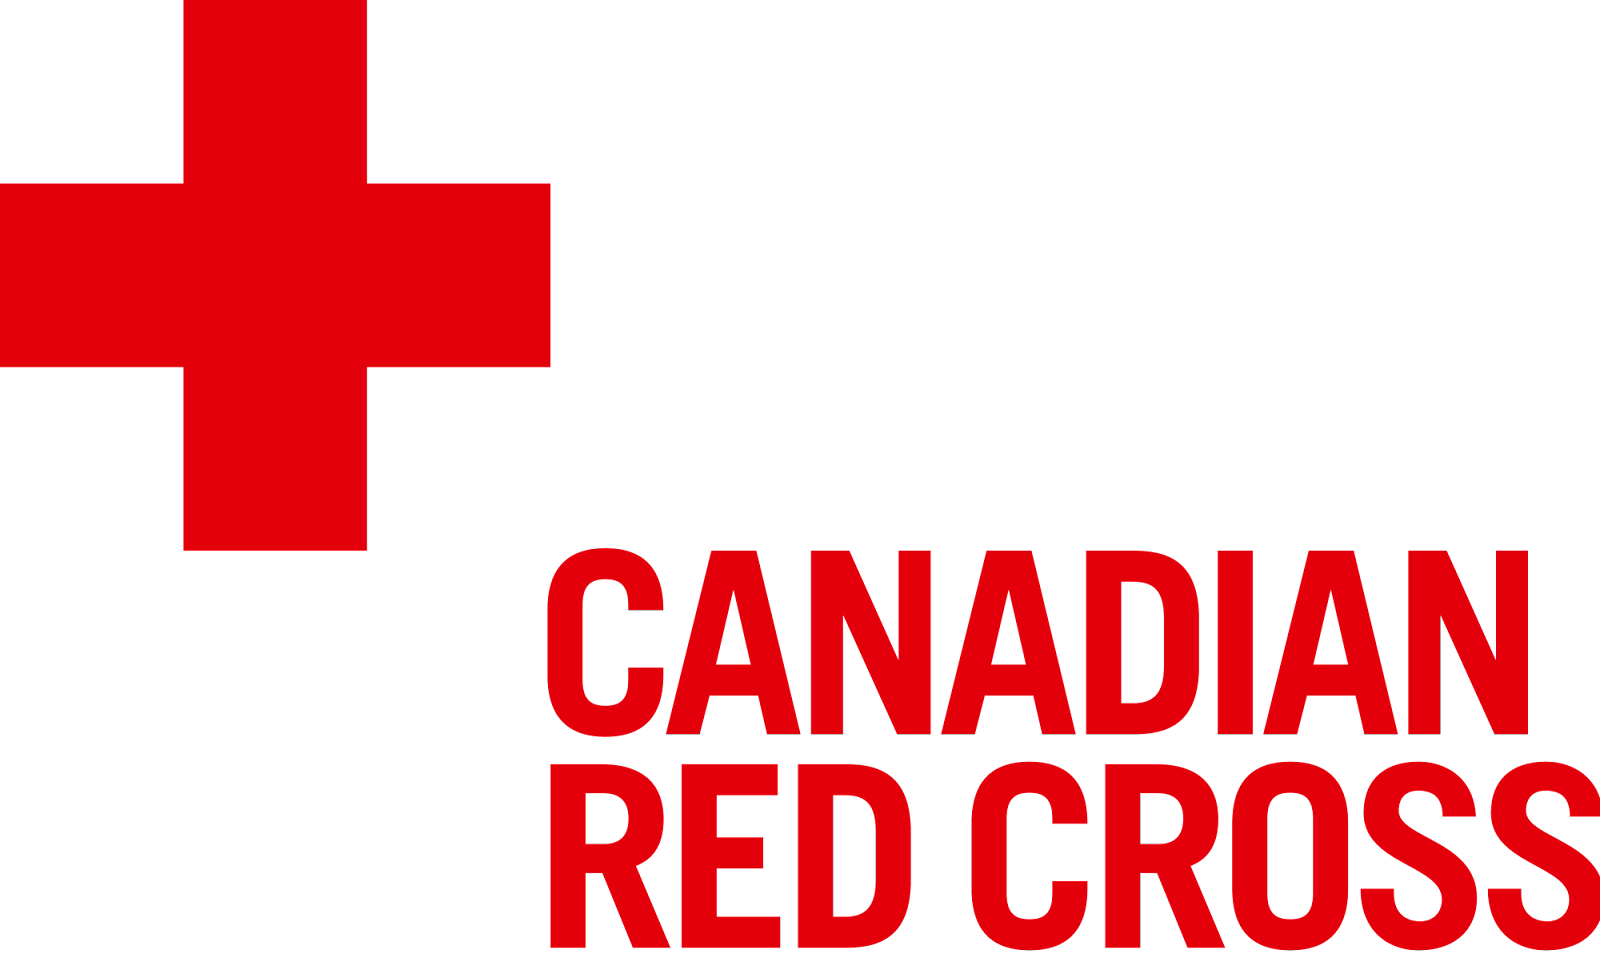 File:Canadian Red Cross.svg - Wikimedia Commons